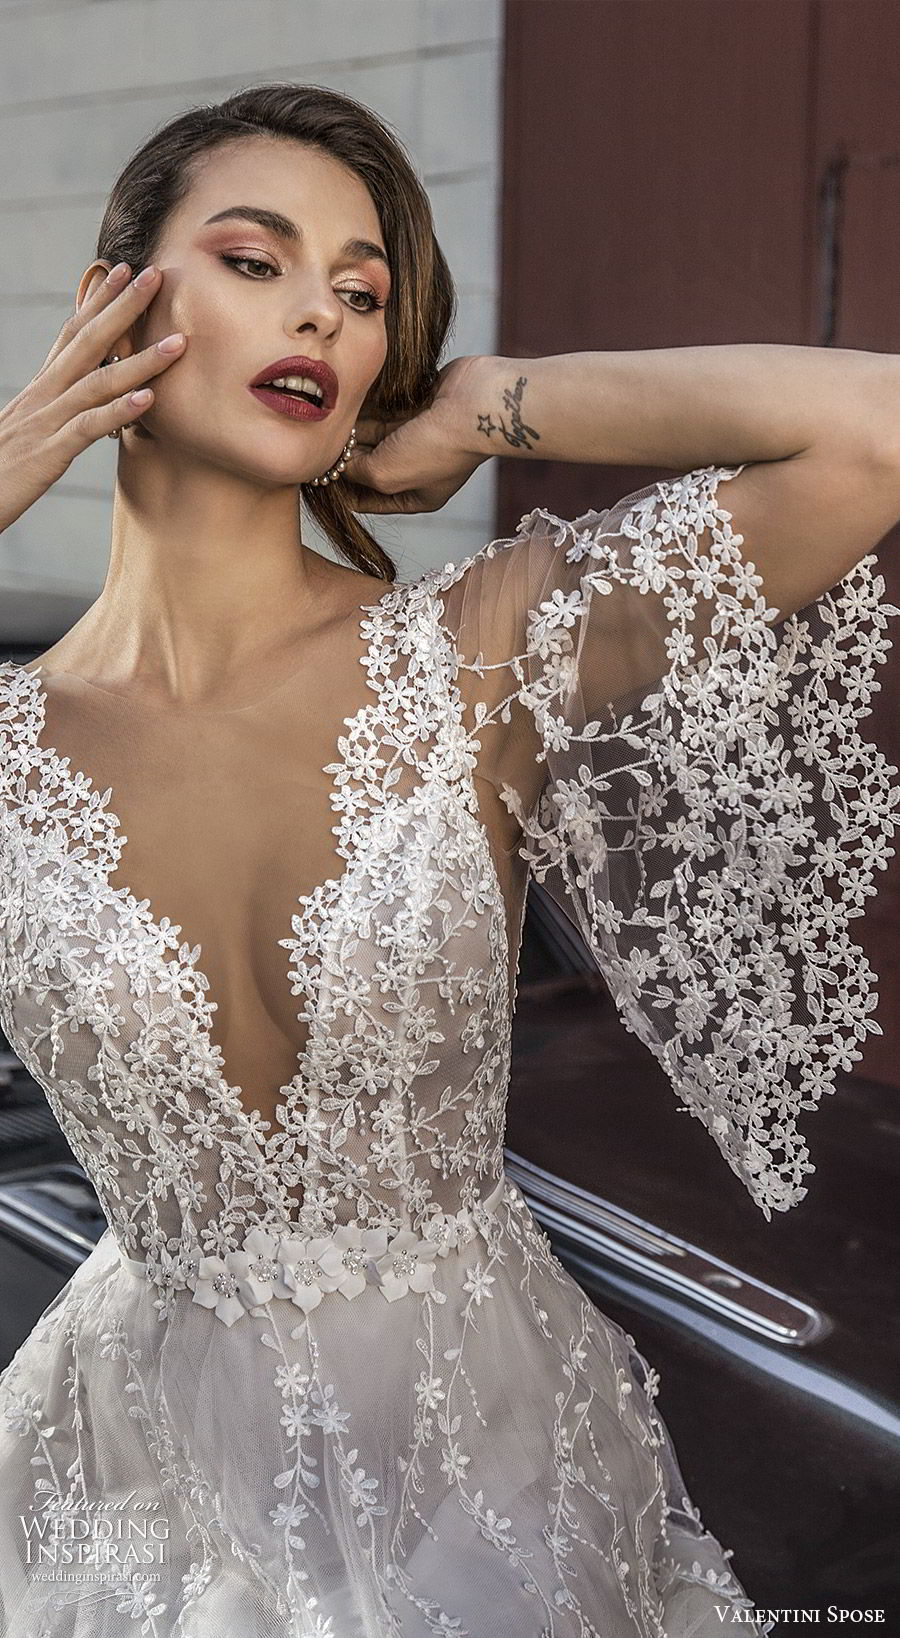 valentini spose spring 2020 bridal sheer flutter sleeves v neck fully embroidered lace a line ball gown wedding dress (1) romantic boho lv